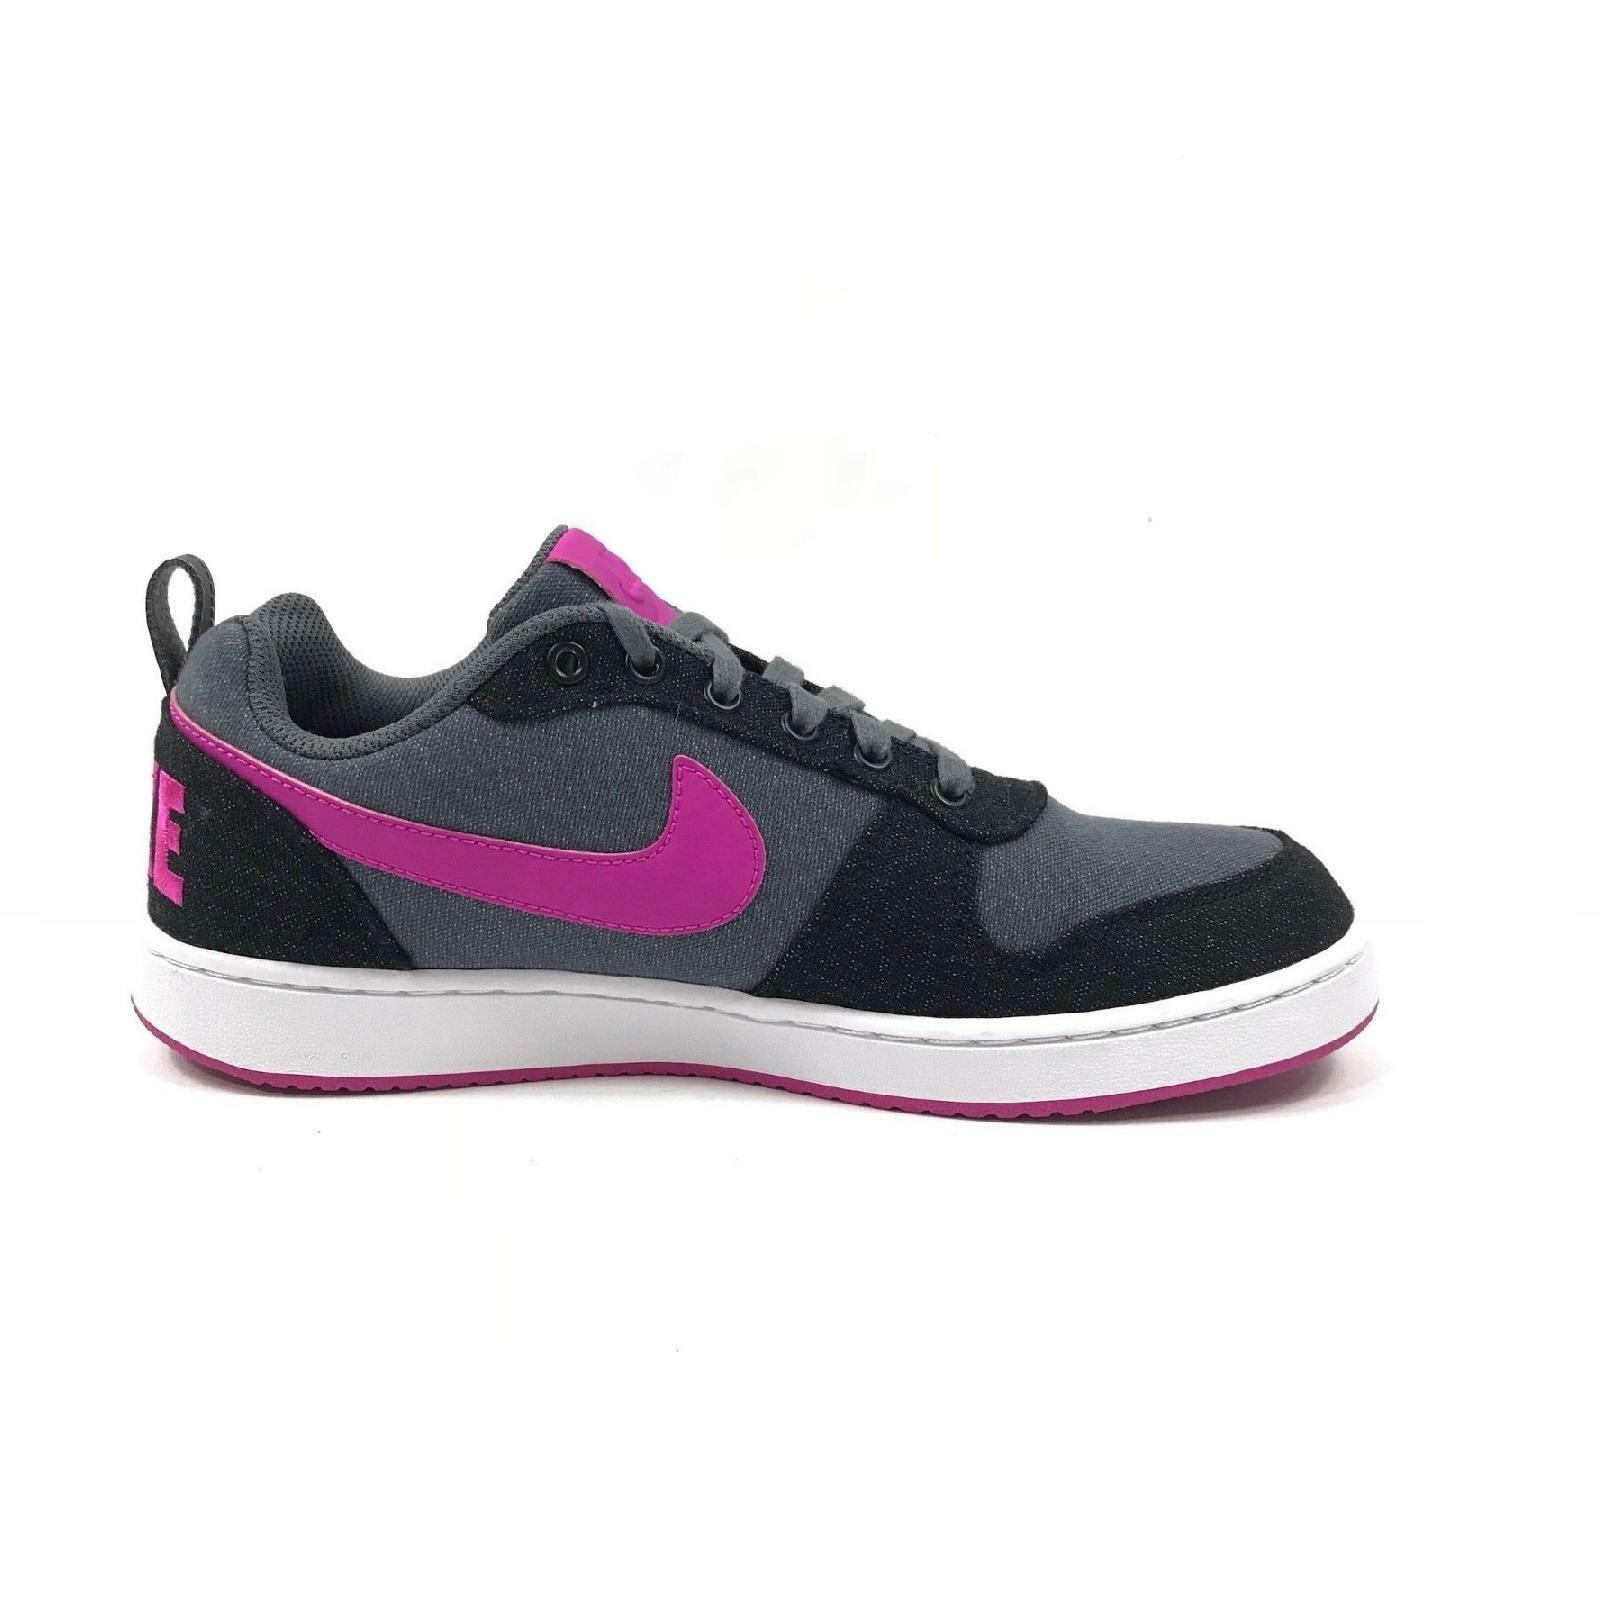 official photos 7b547 92e09 ... Running shoes AT3176-401,. Womens NIKE COURT BgoldUGH LOW PREMIUM Dark  Pink Trainers 861533 861533 861533 003 d4f1d7